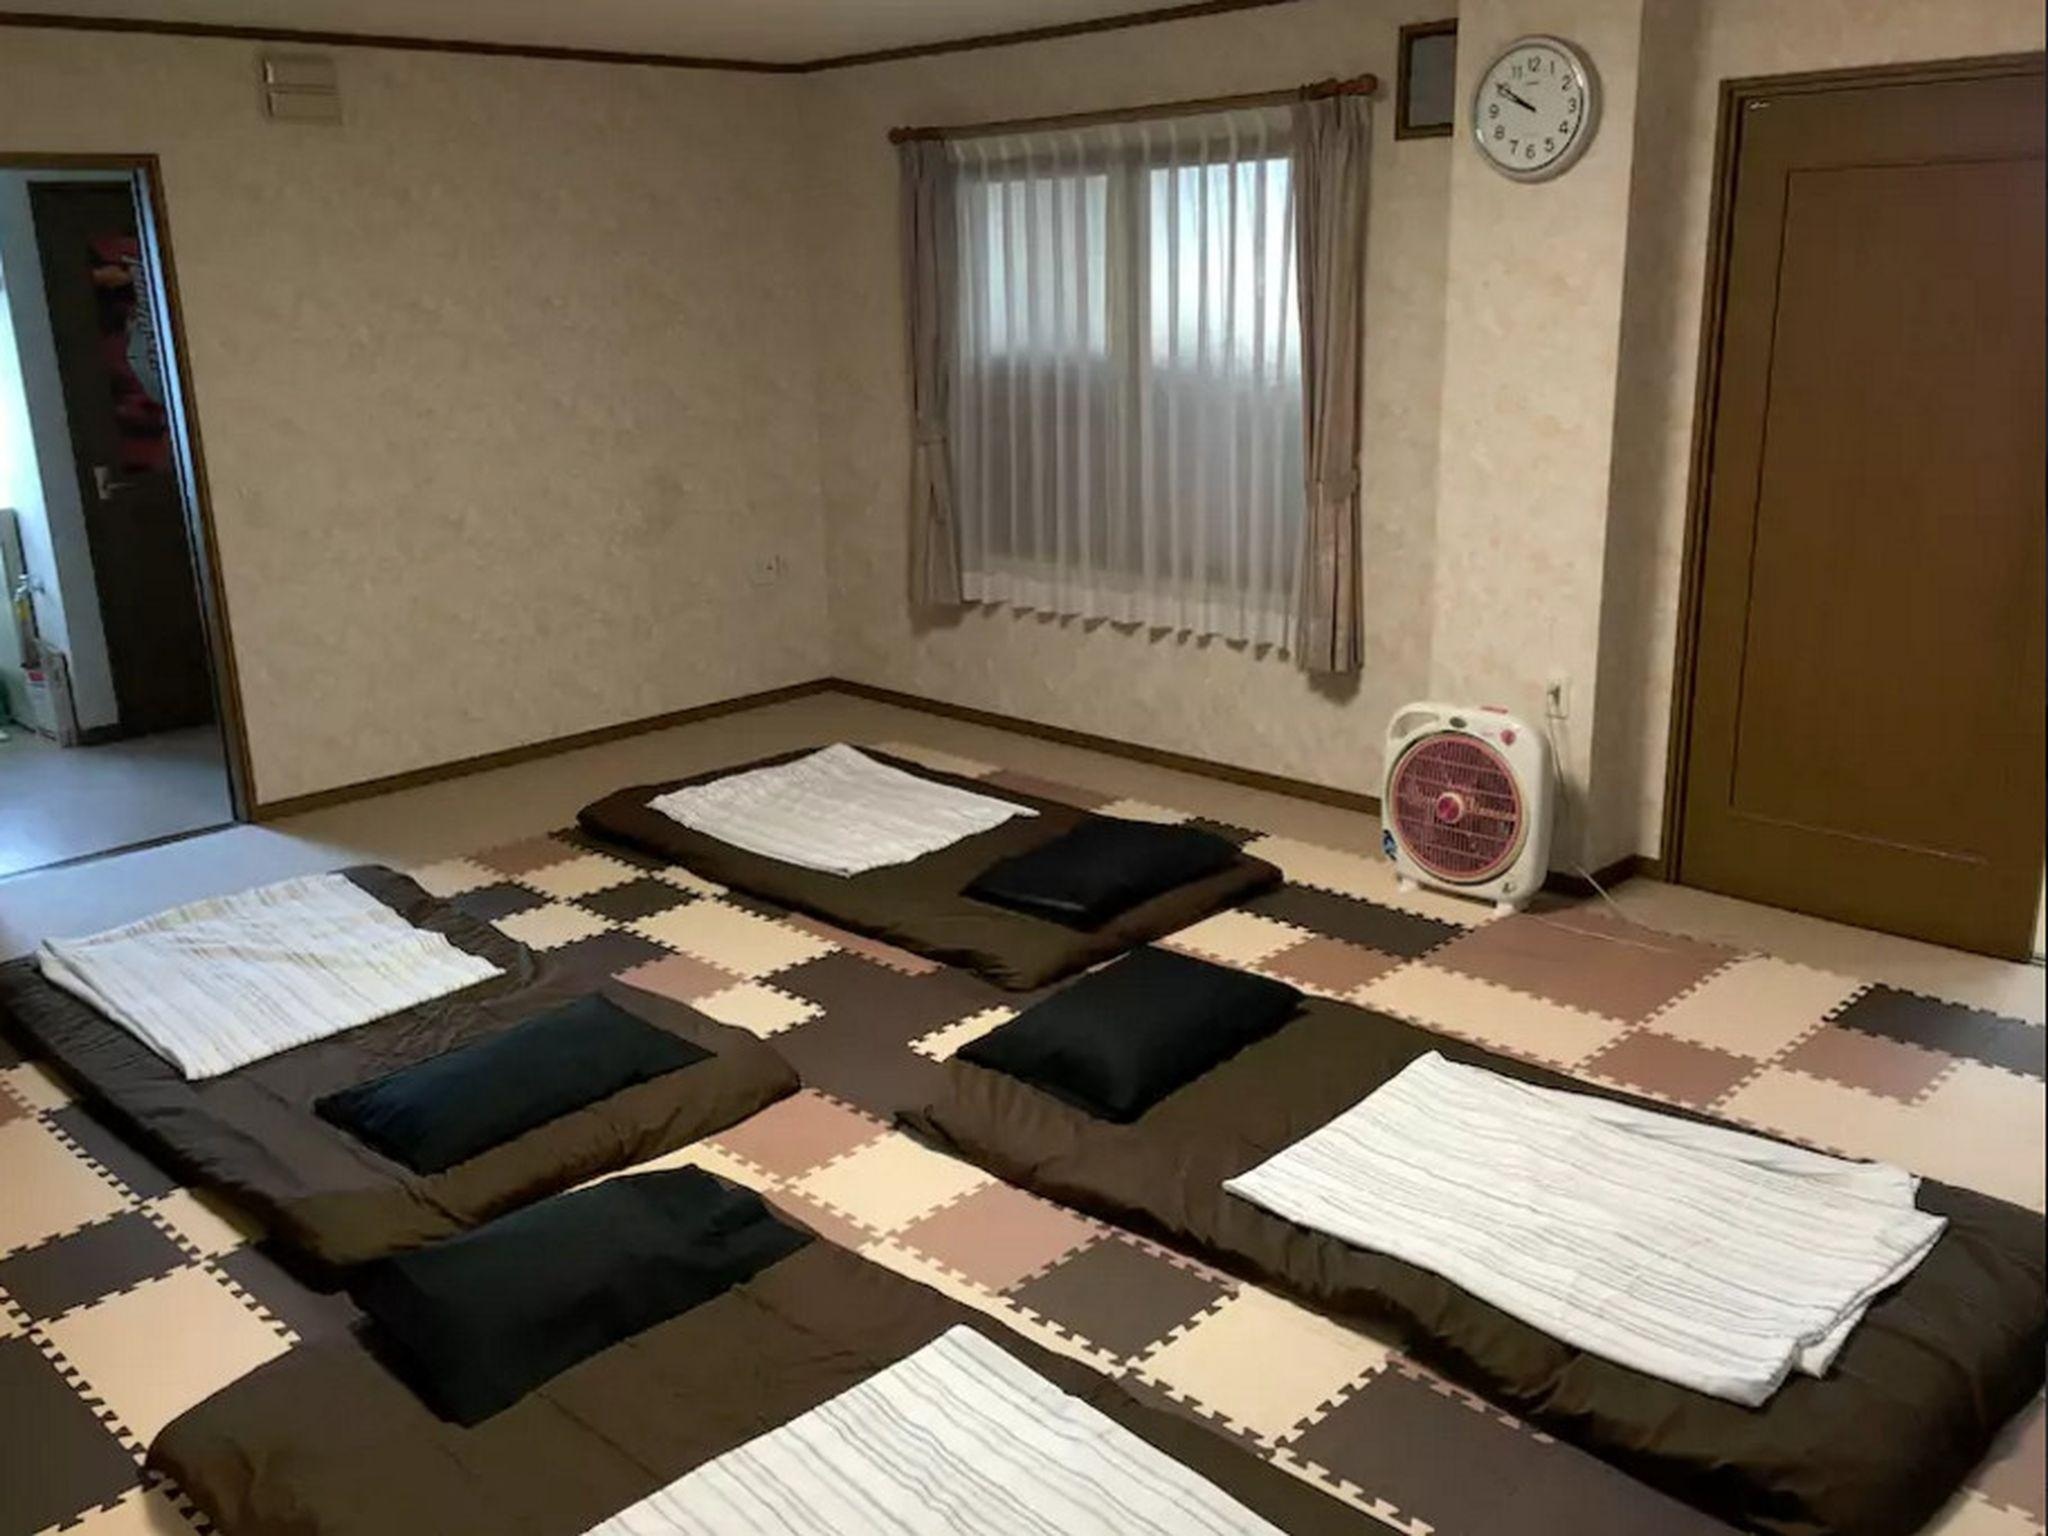 WT 2 Bedroom Apartment in Western Sapporo 3